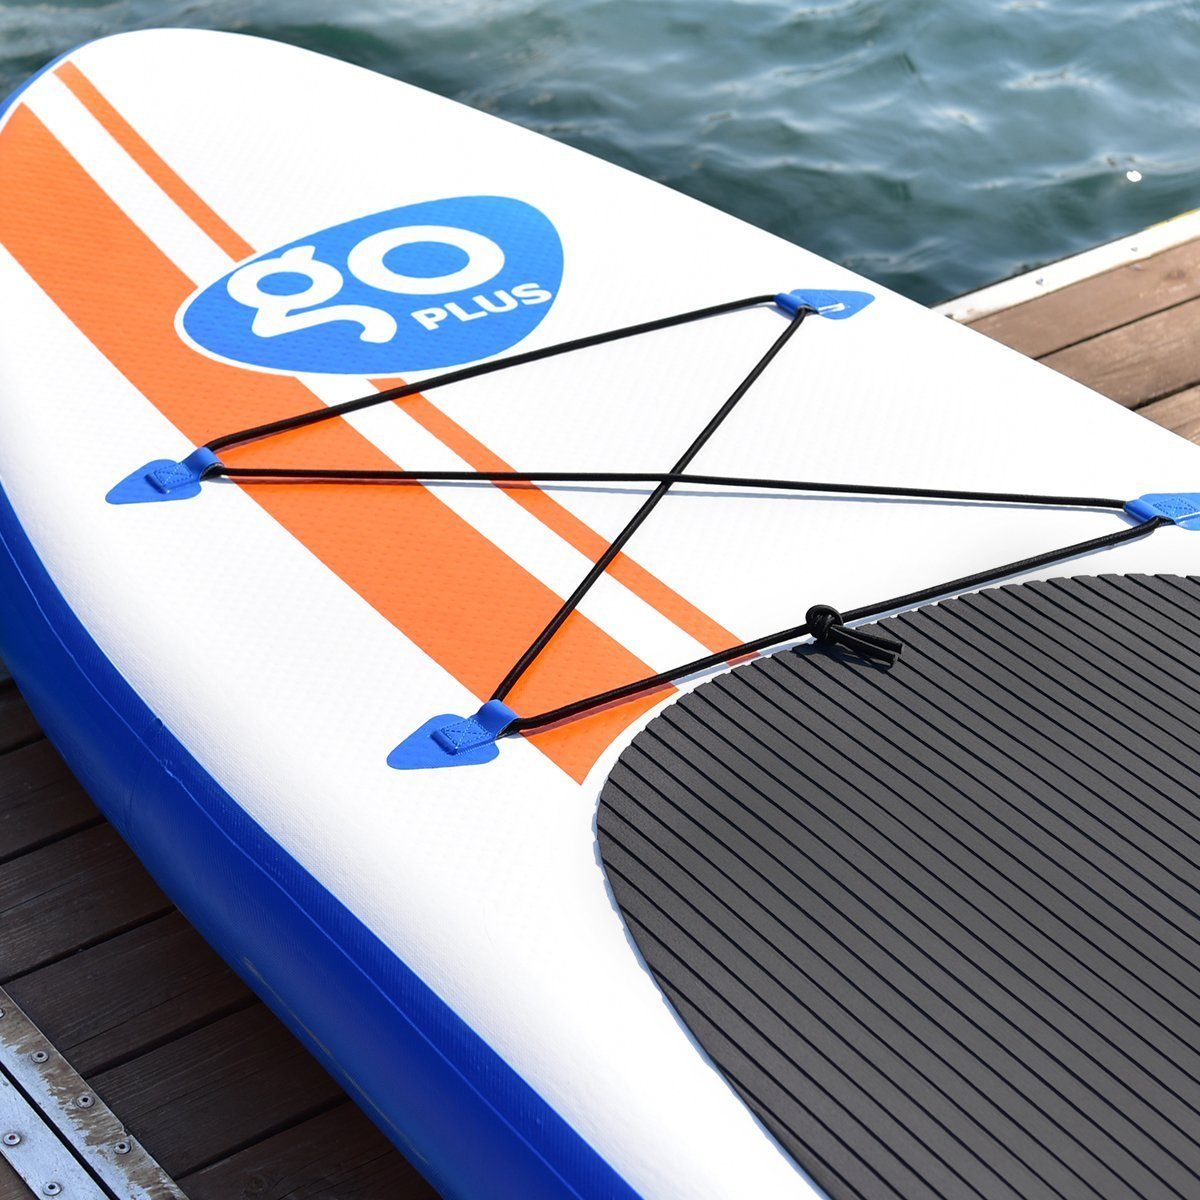 76 15cm Inflable COSTWAY Tablas Paddle Board Hinchables Remo Surf Tablero Sup Board Stand Up Set 300